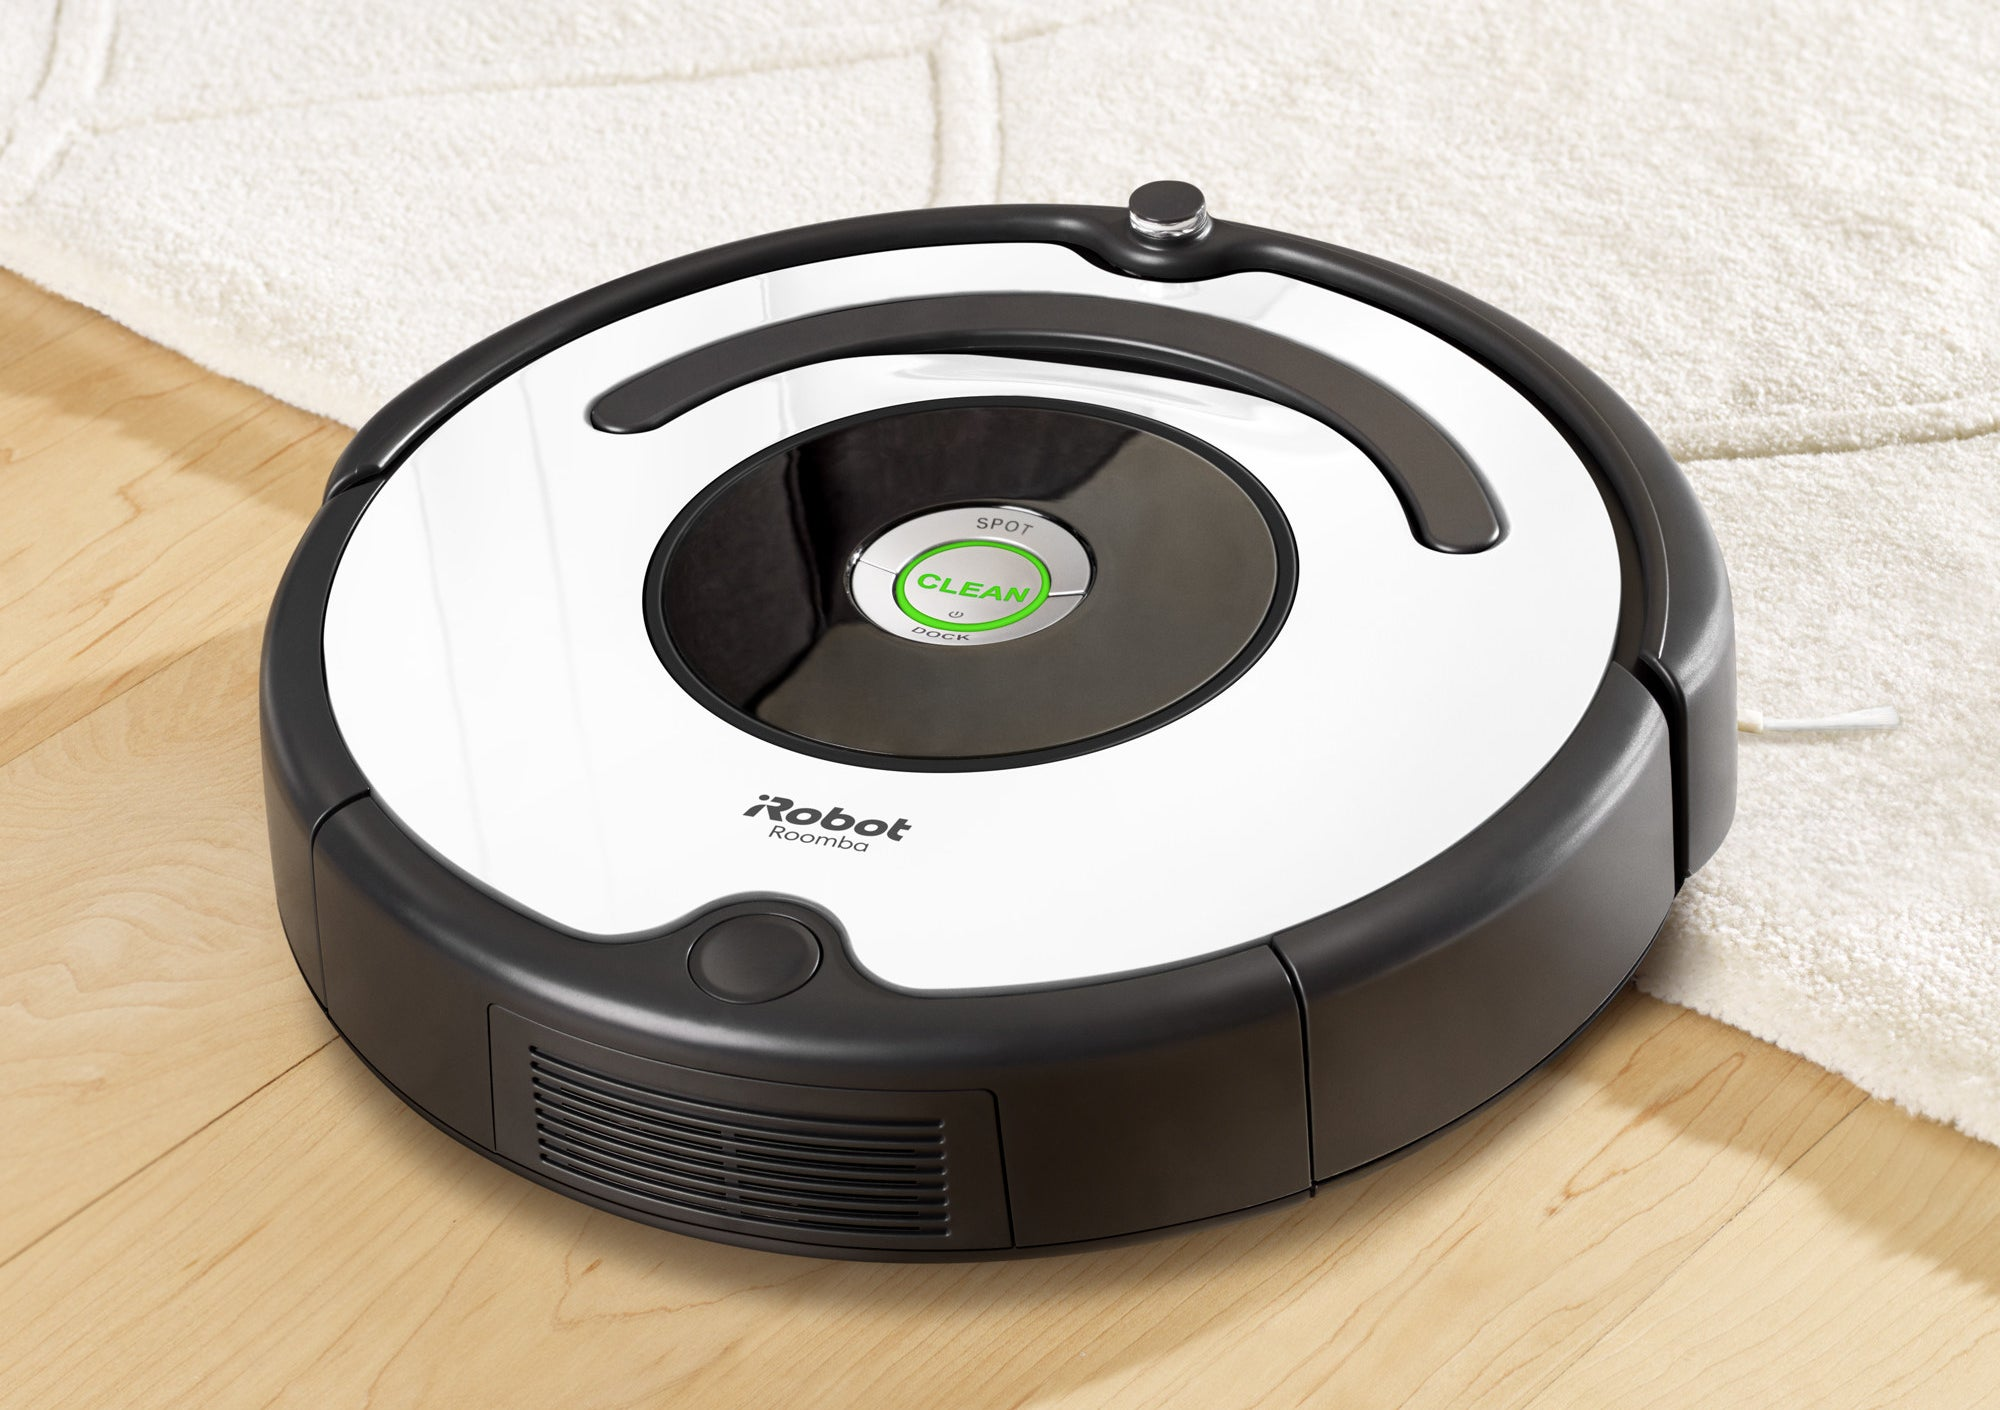 roomba vacuuming on floor